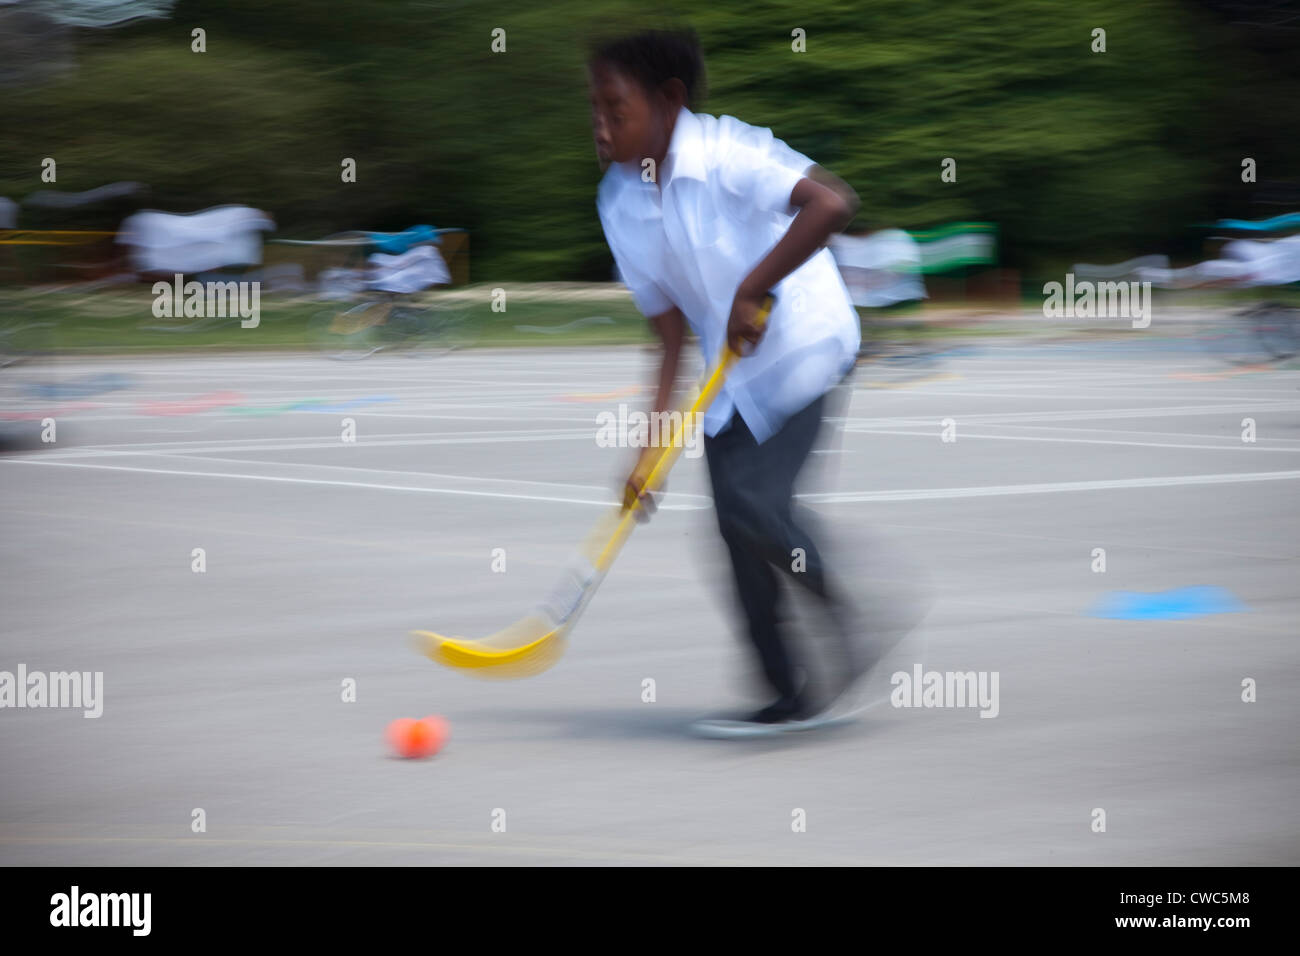 A young Asian boy plays hockey playground of his school UK - Stock Image